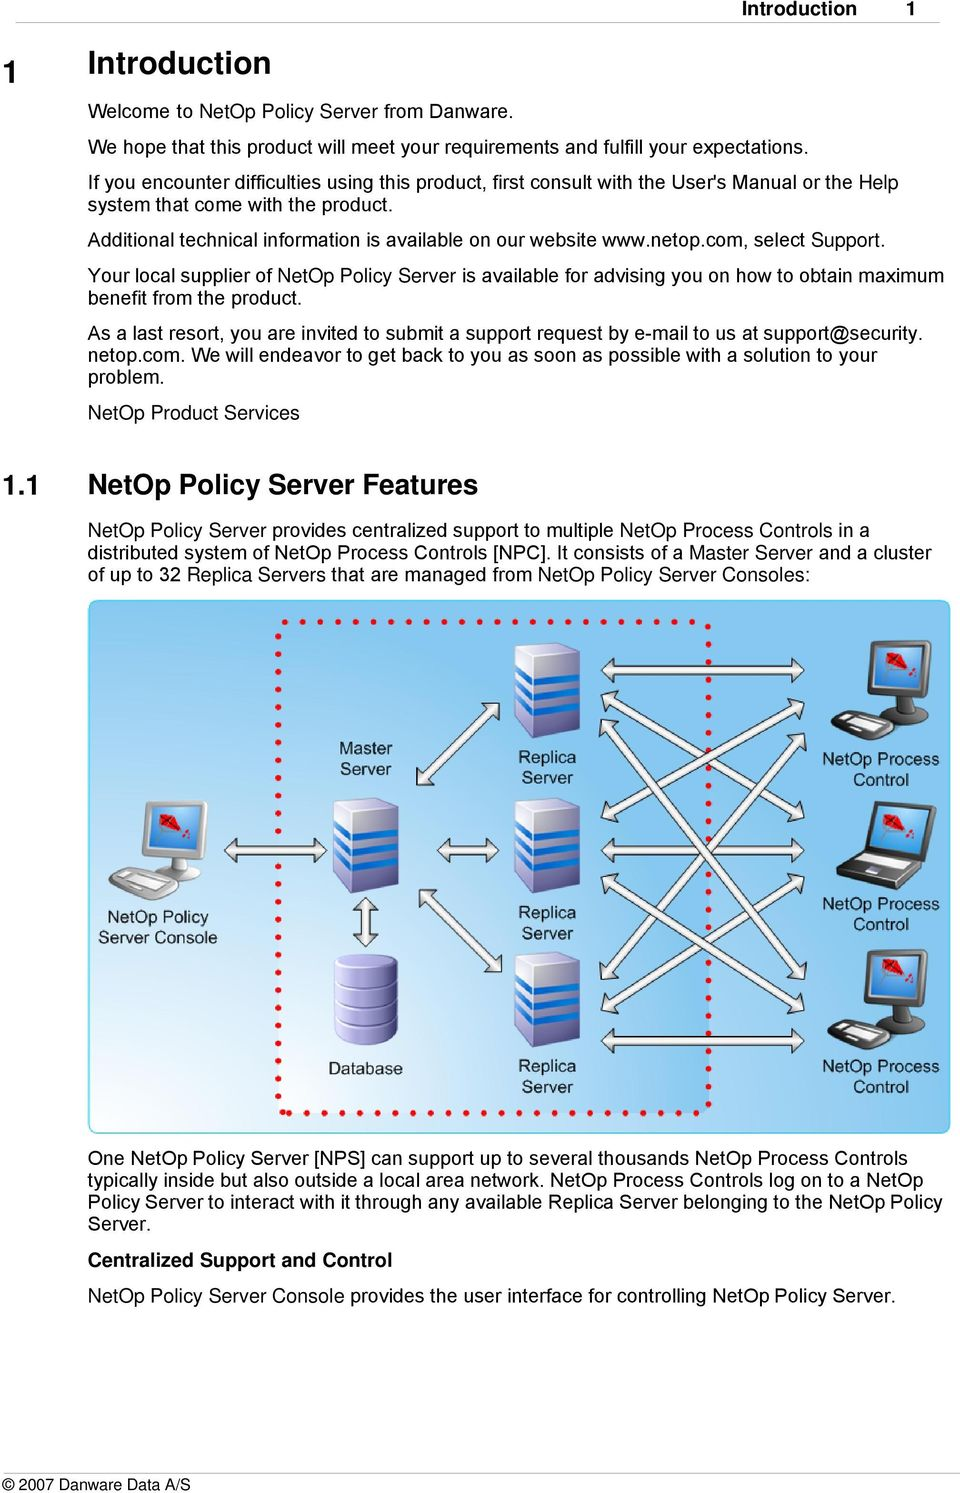 netop.com, select Support. Your local supplier of NetOp Policy Server is available for advising you on how to obtain maximum benefit from the product.